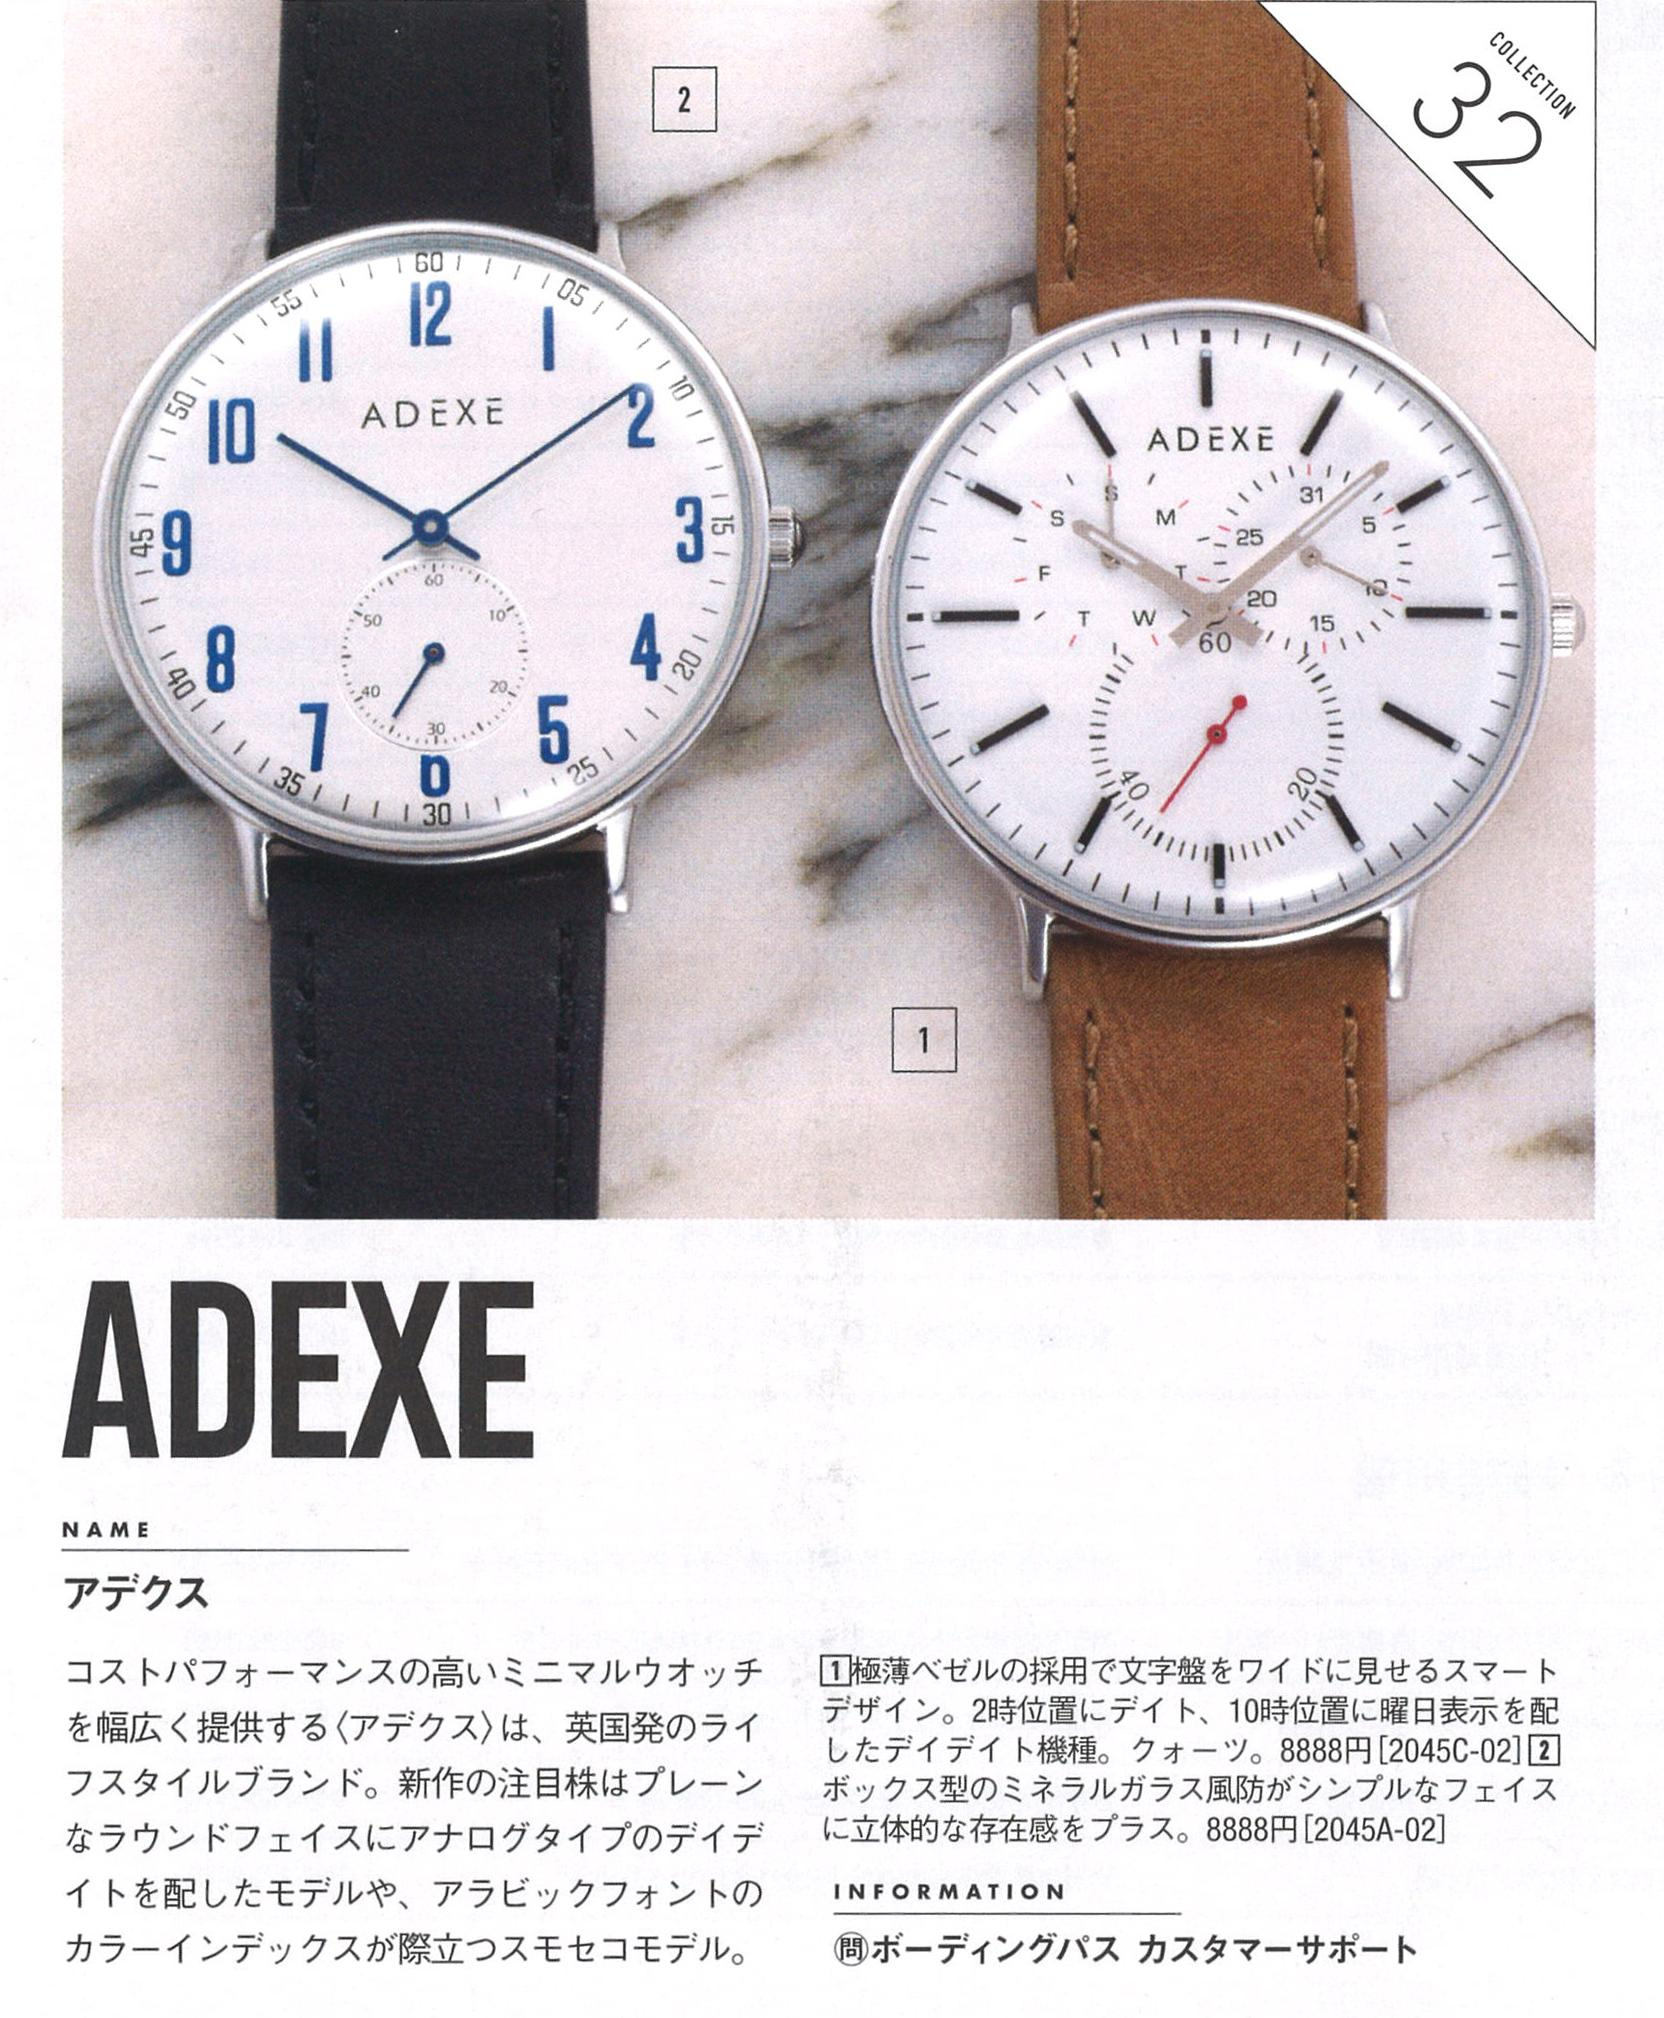 [掲載情報]Men's JOKER WATCH Vol.7